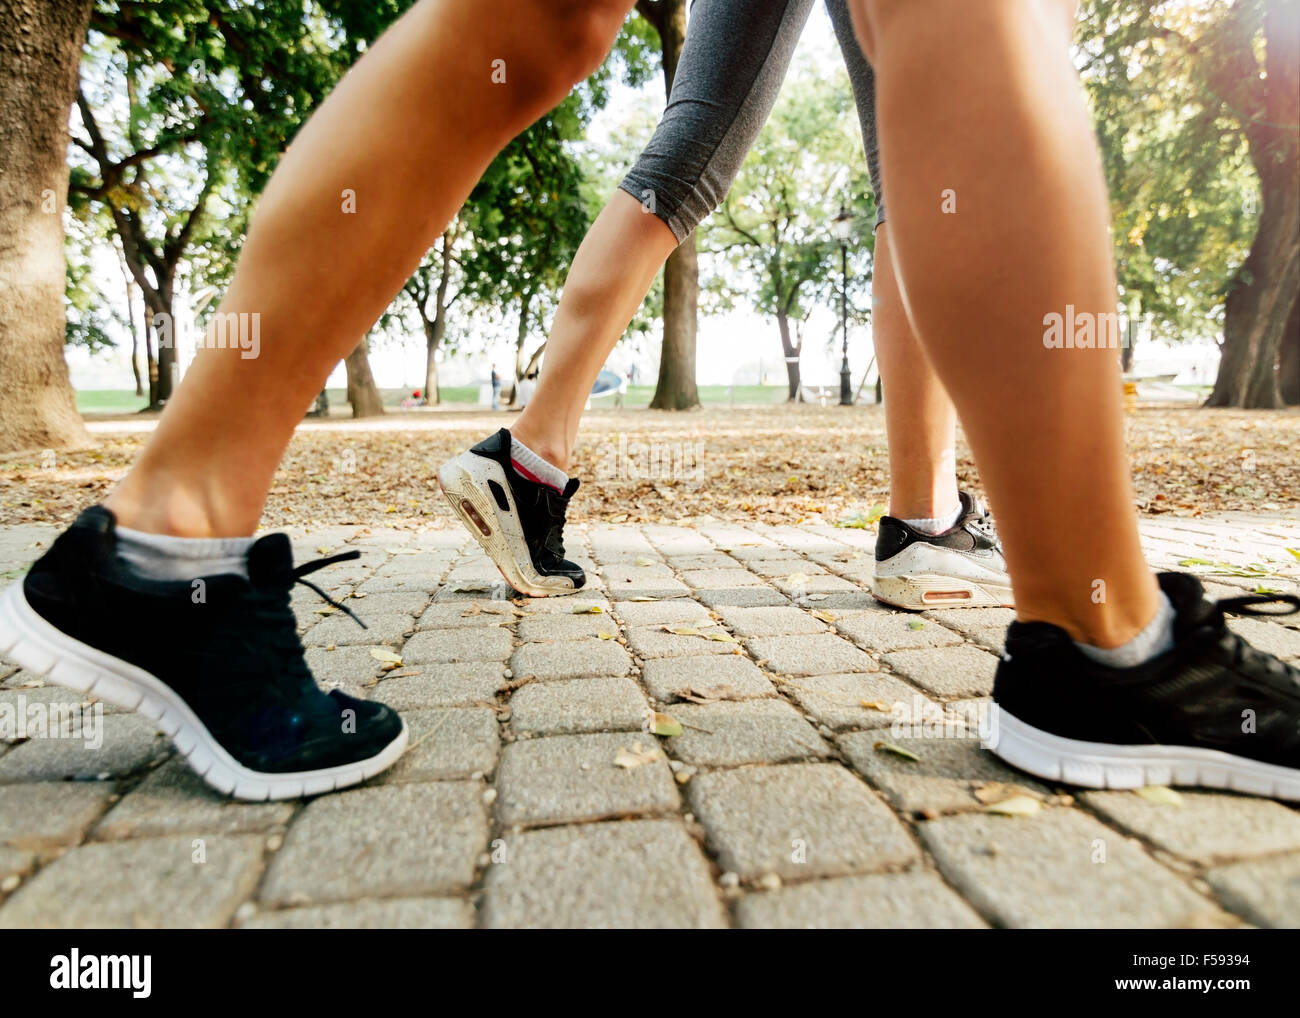 Closeup of joggers feet while in action and running - Stock Image